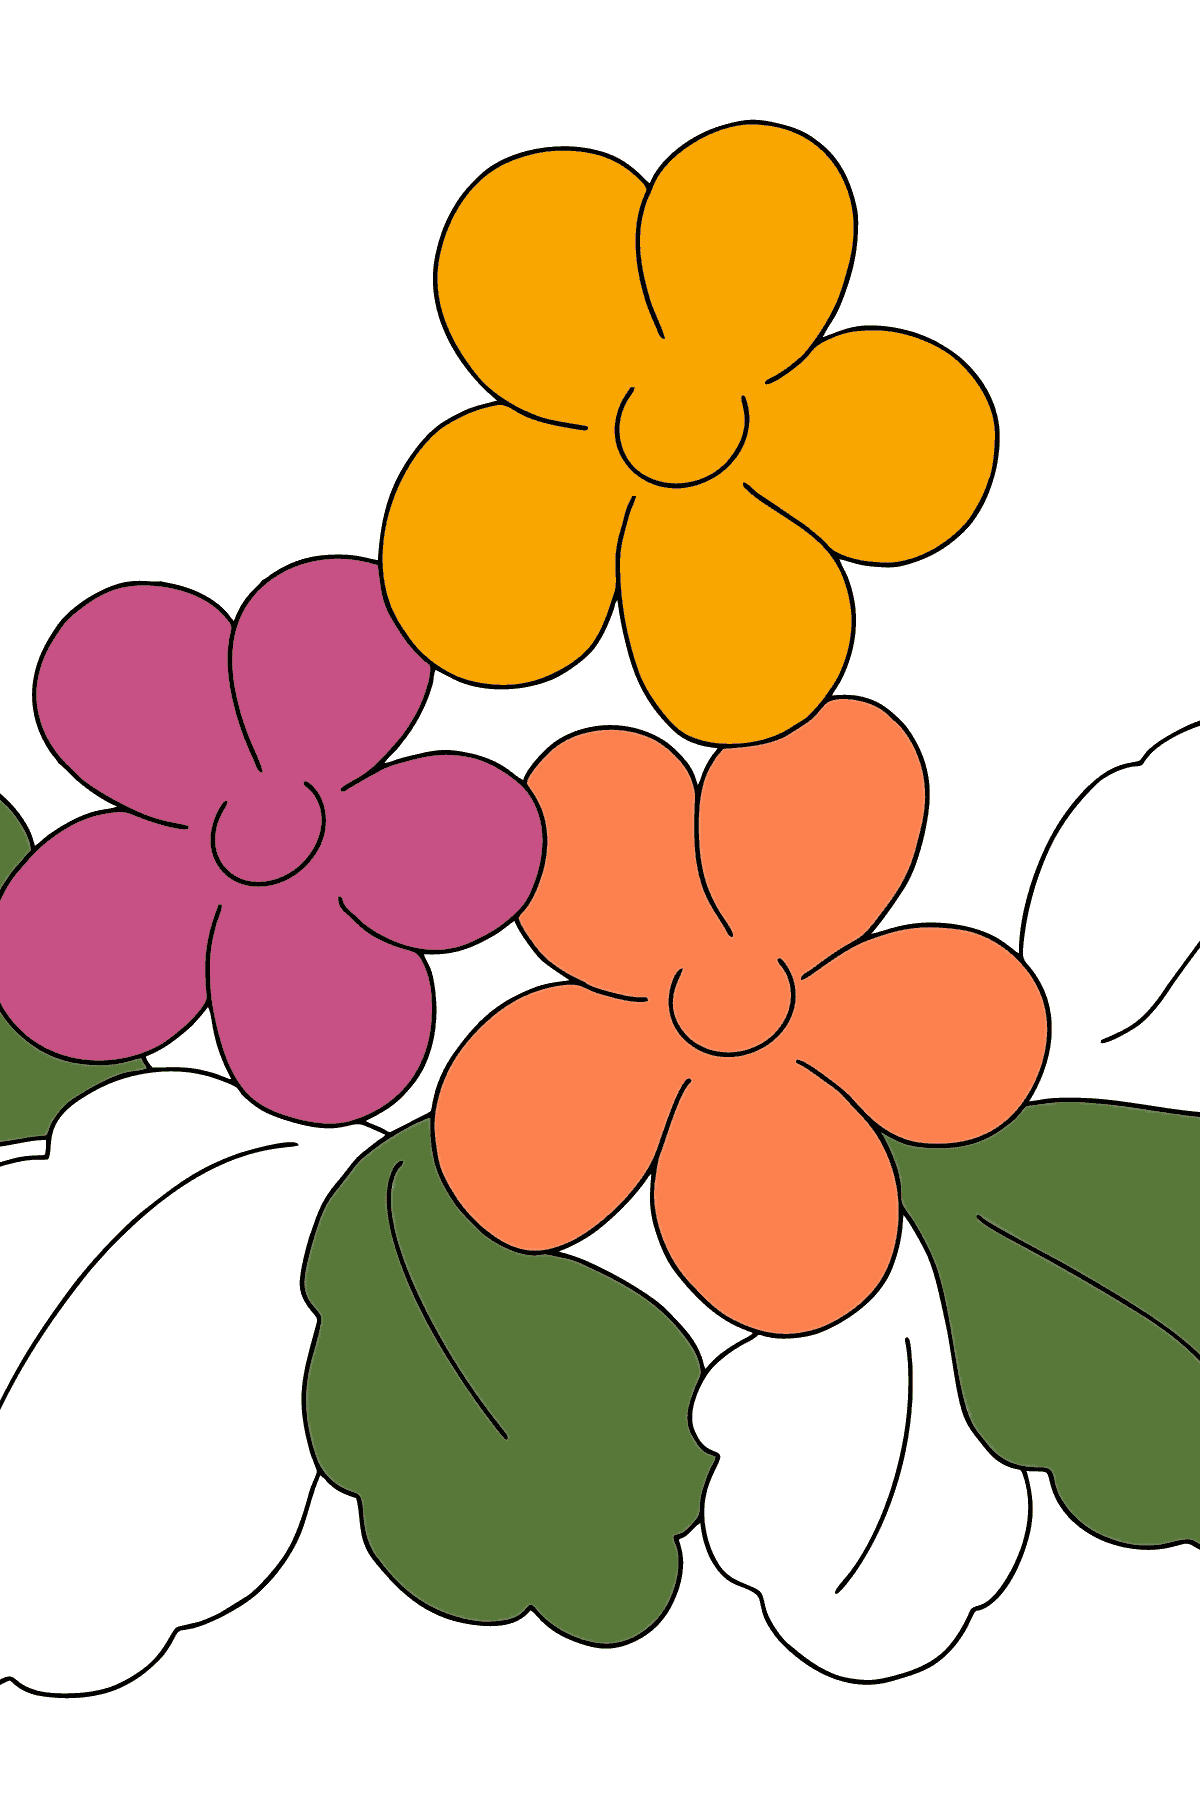 Coloring Page - Spring and Flowers - Coloring Pages for Kids